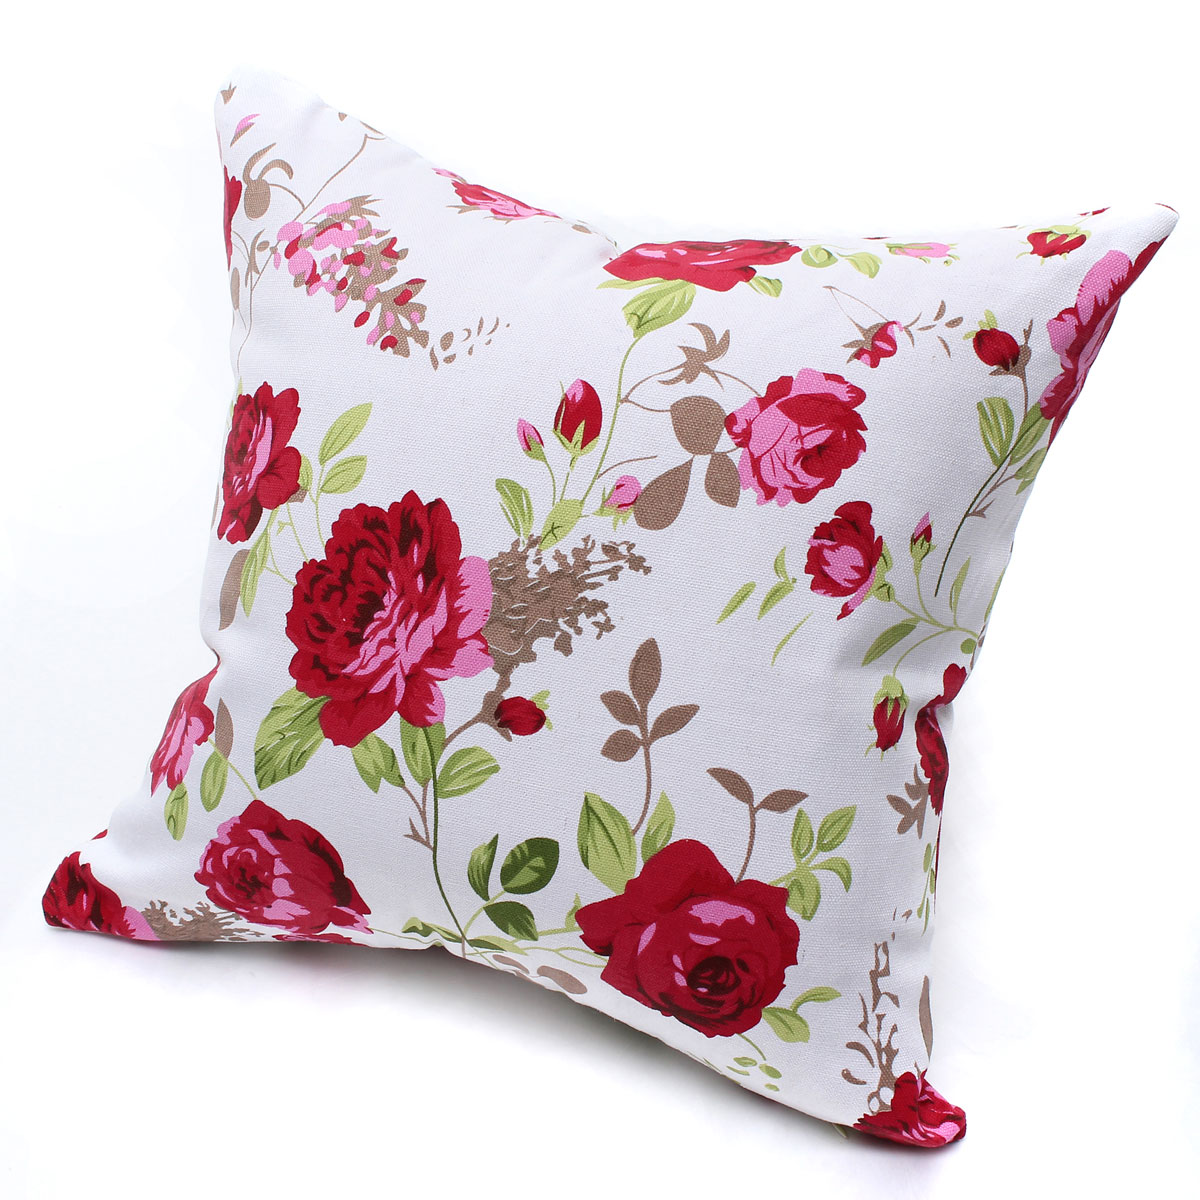 Floral Throw Pillows. The Pillow Collection 18. Items. Purchase Tropical Island Flowers Throw ...